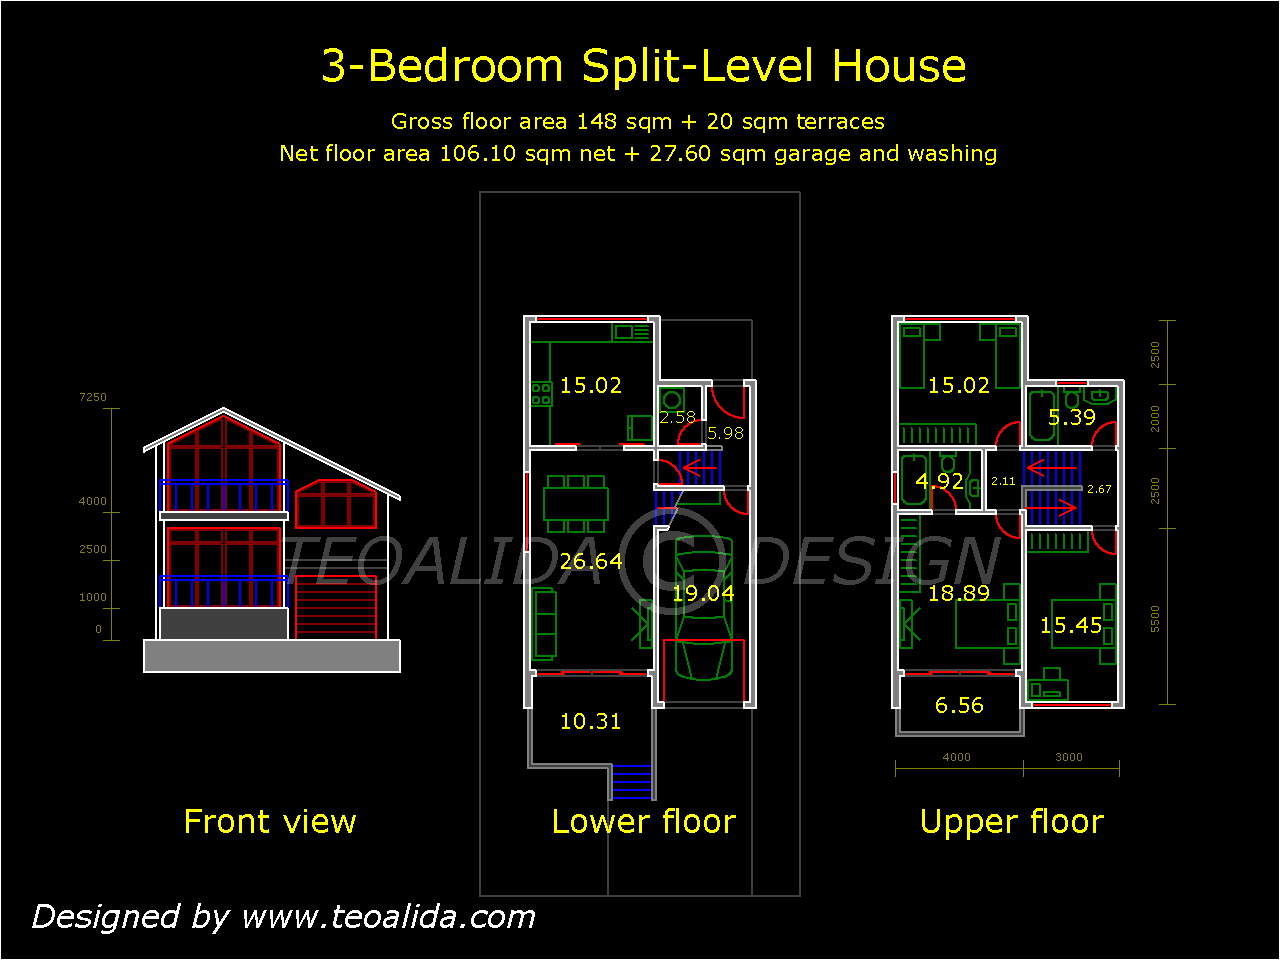 2 Bedroom Floor Plan House Floor Plans 50 400 Sqm Designed By Teoalida